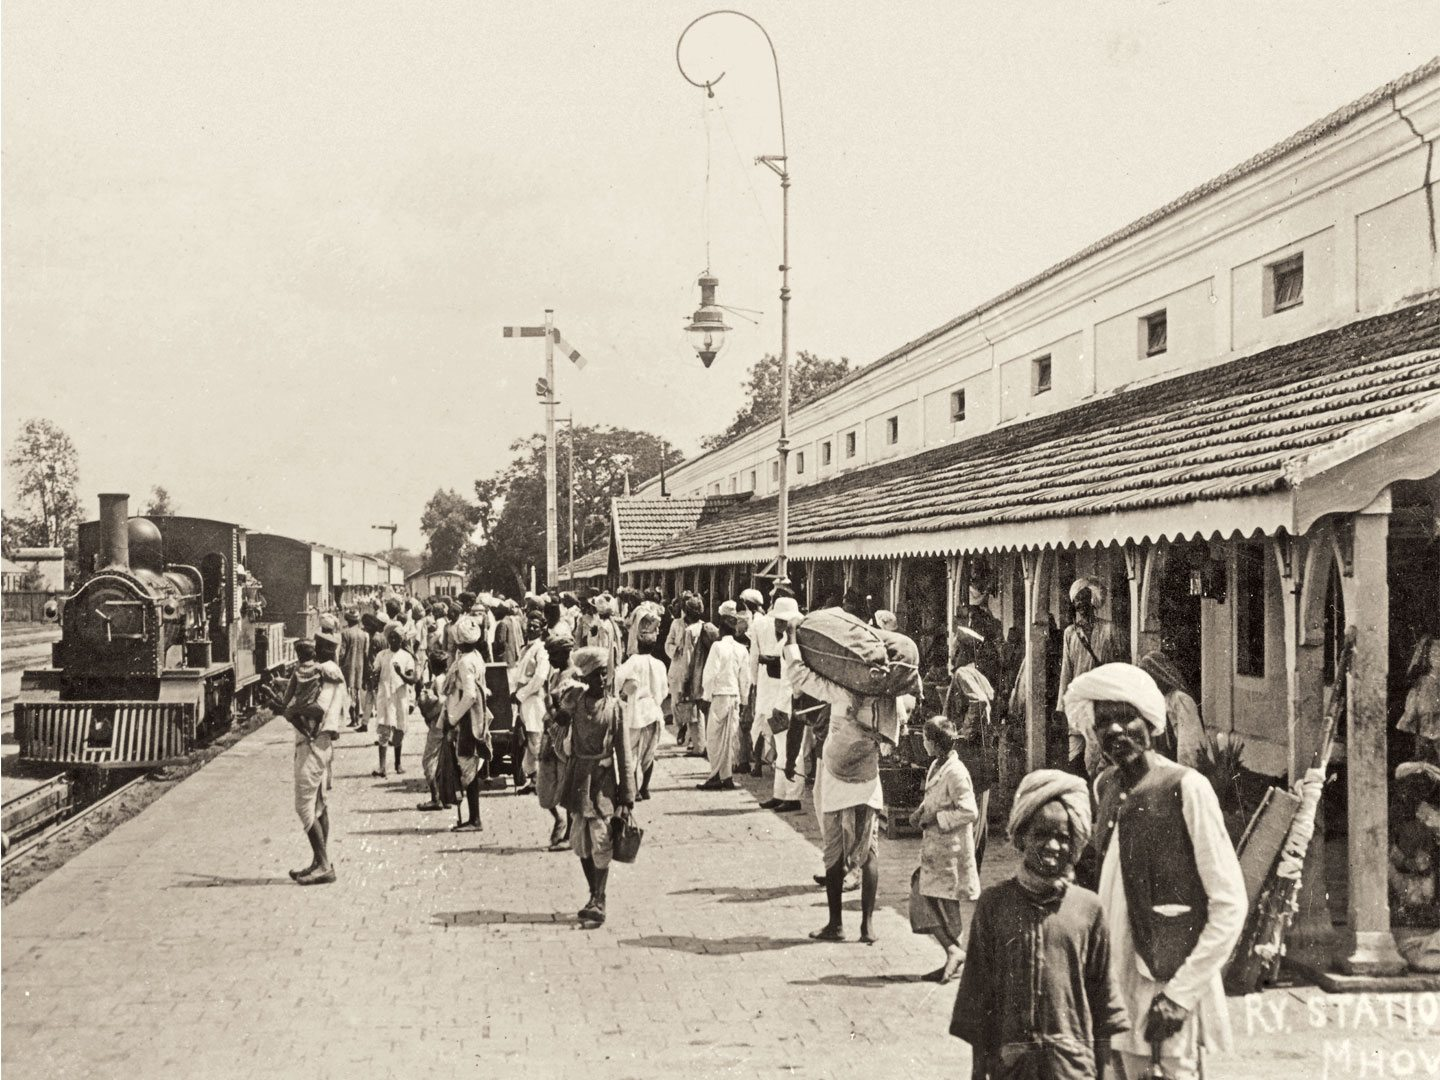 Four generations of the writer's family lived and worked along the Great Indian Peninsula Railway, which was the predecessor of today's Central Railway. Photo: Mary/Indiapicture